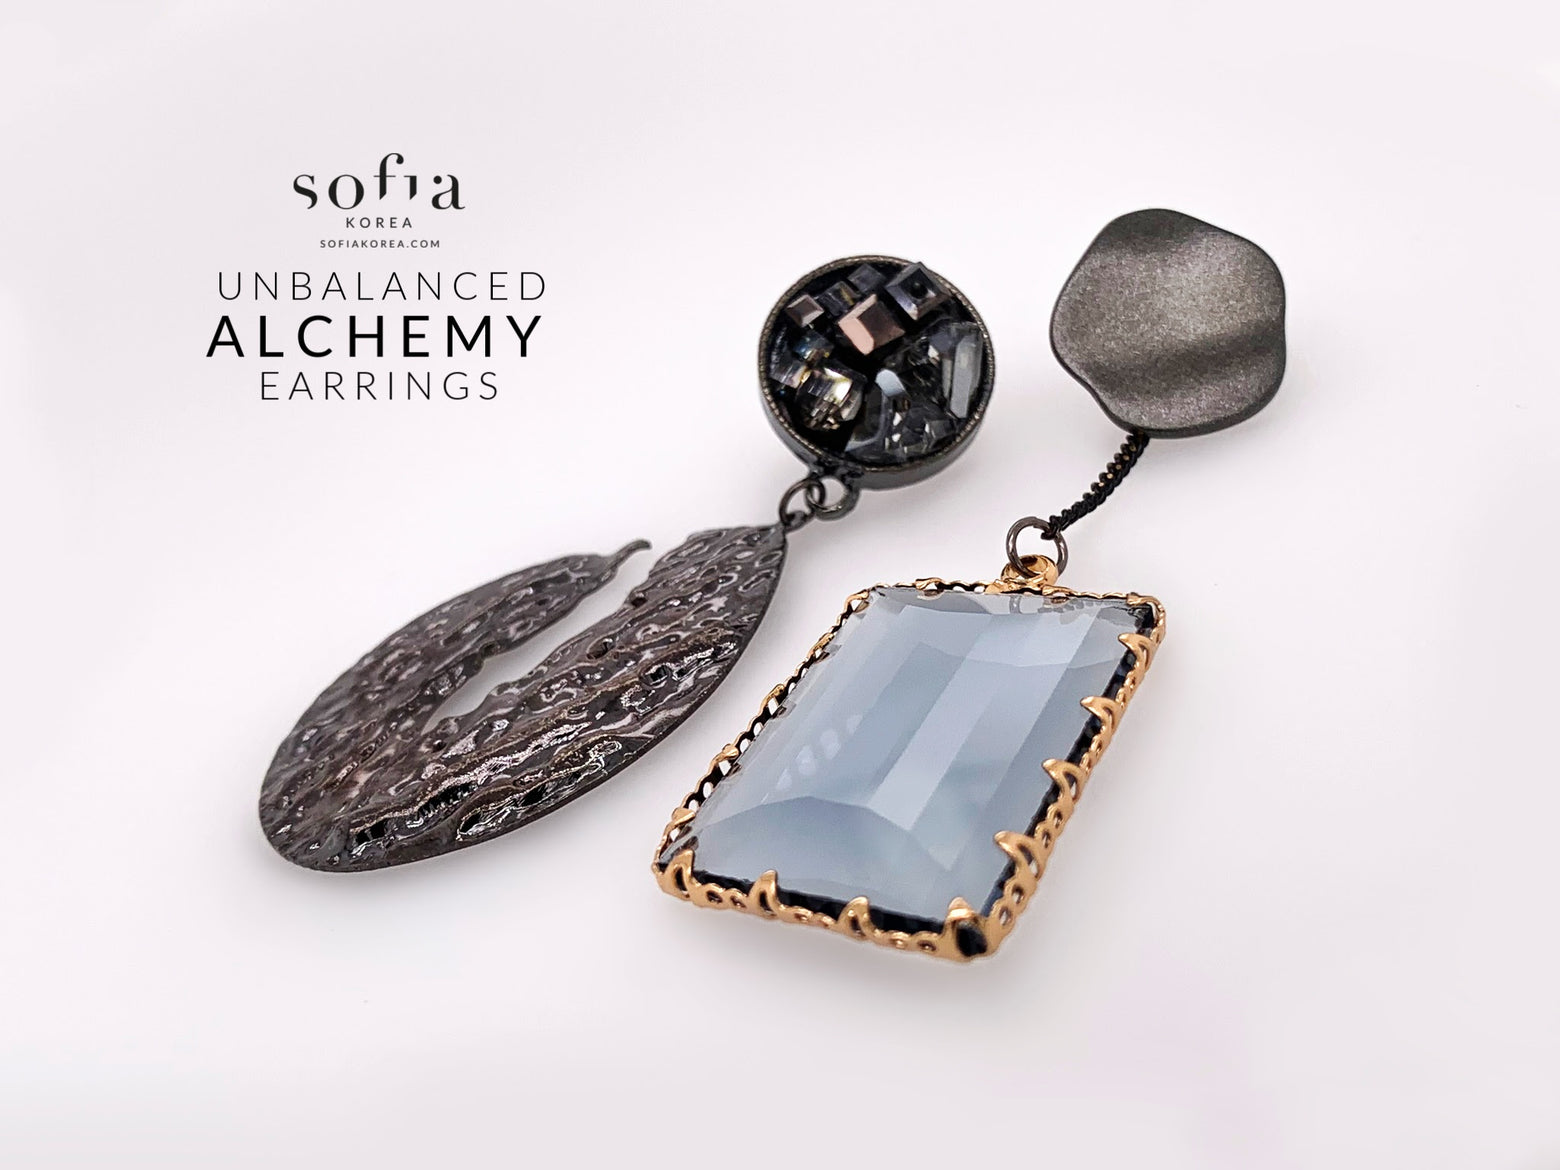 Alchemy Earrings - Sofiakorea